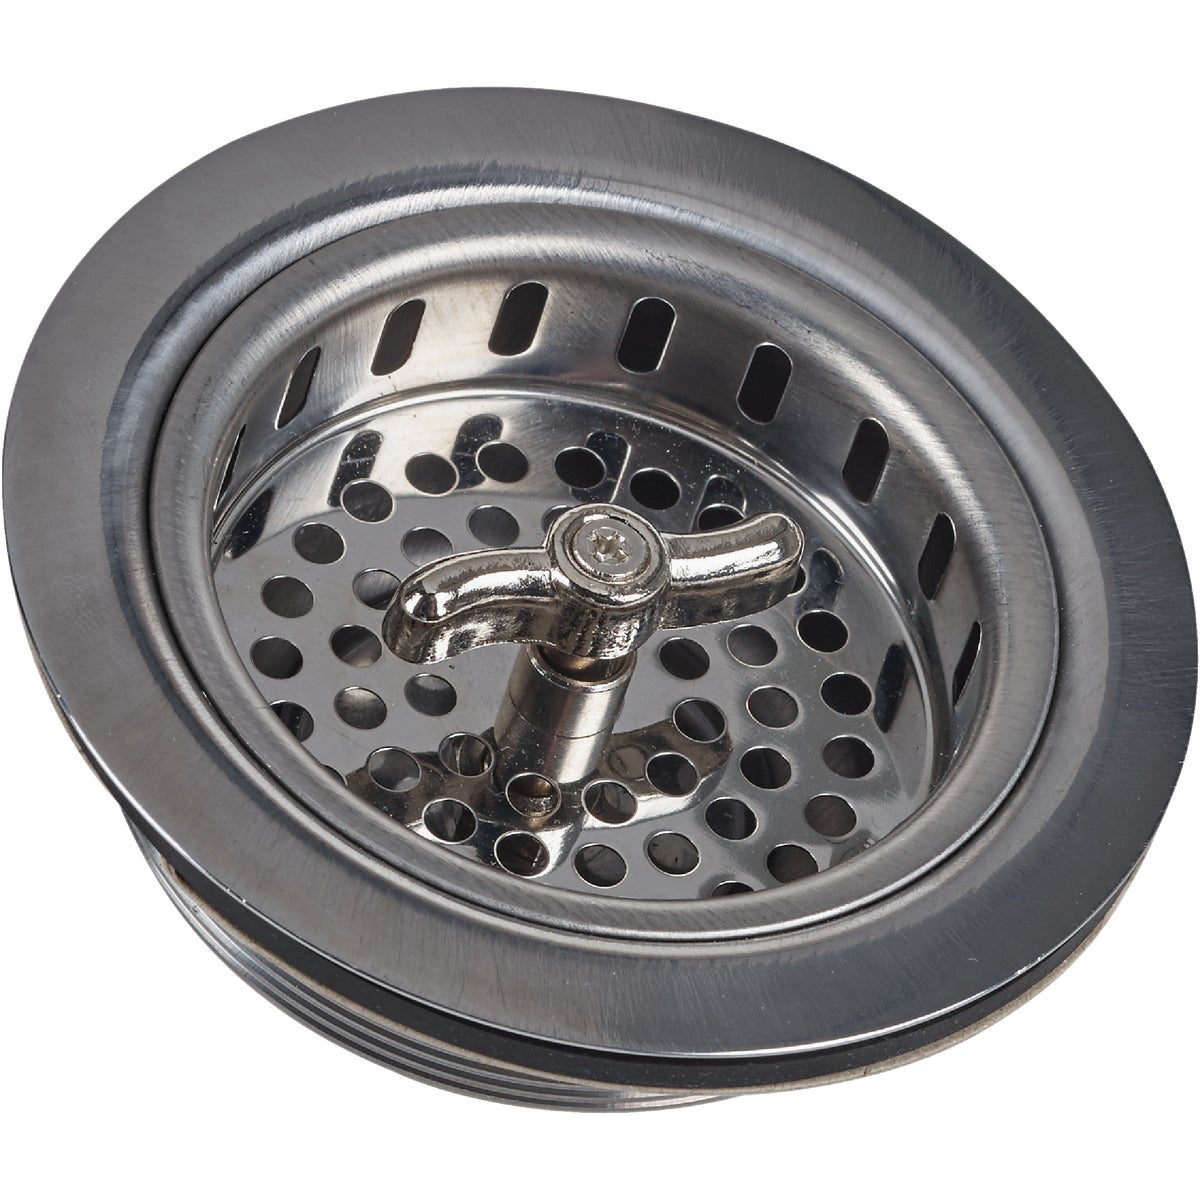 TURN & SEAL STRAINER - 403458 by Do it Best